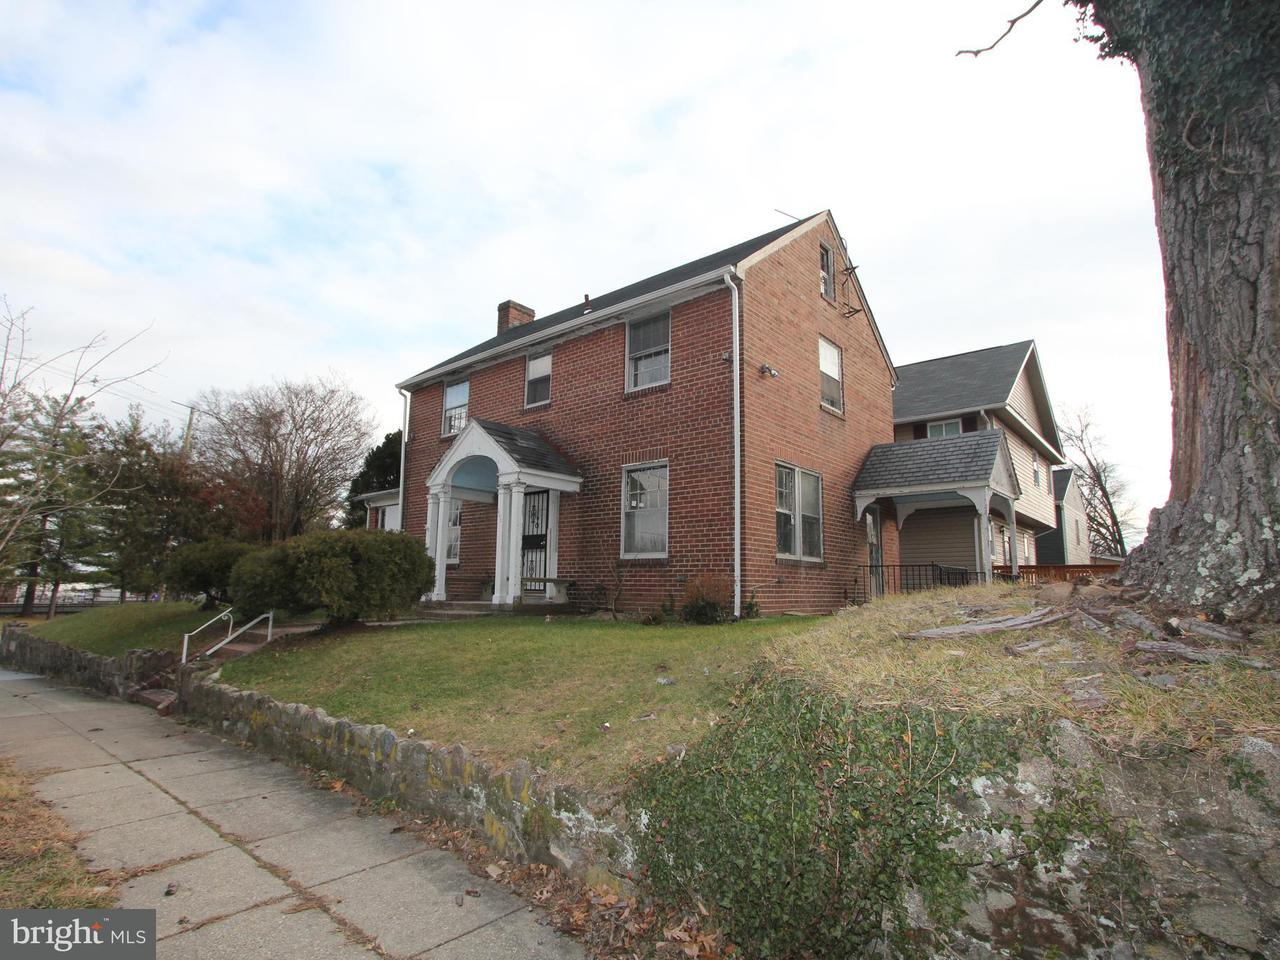 Single Family Home for Sale at 200 Tuckerman St Nw 200 Tuckerman St Nw Washington, District Of Columbia 20011 United States